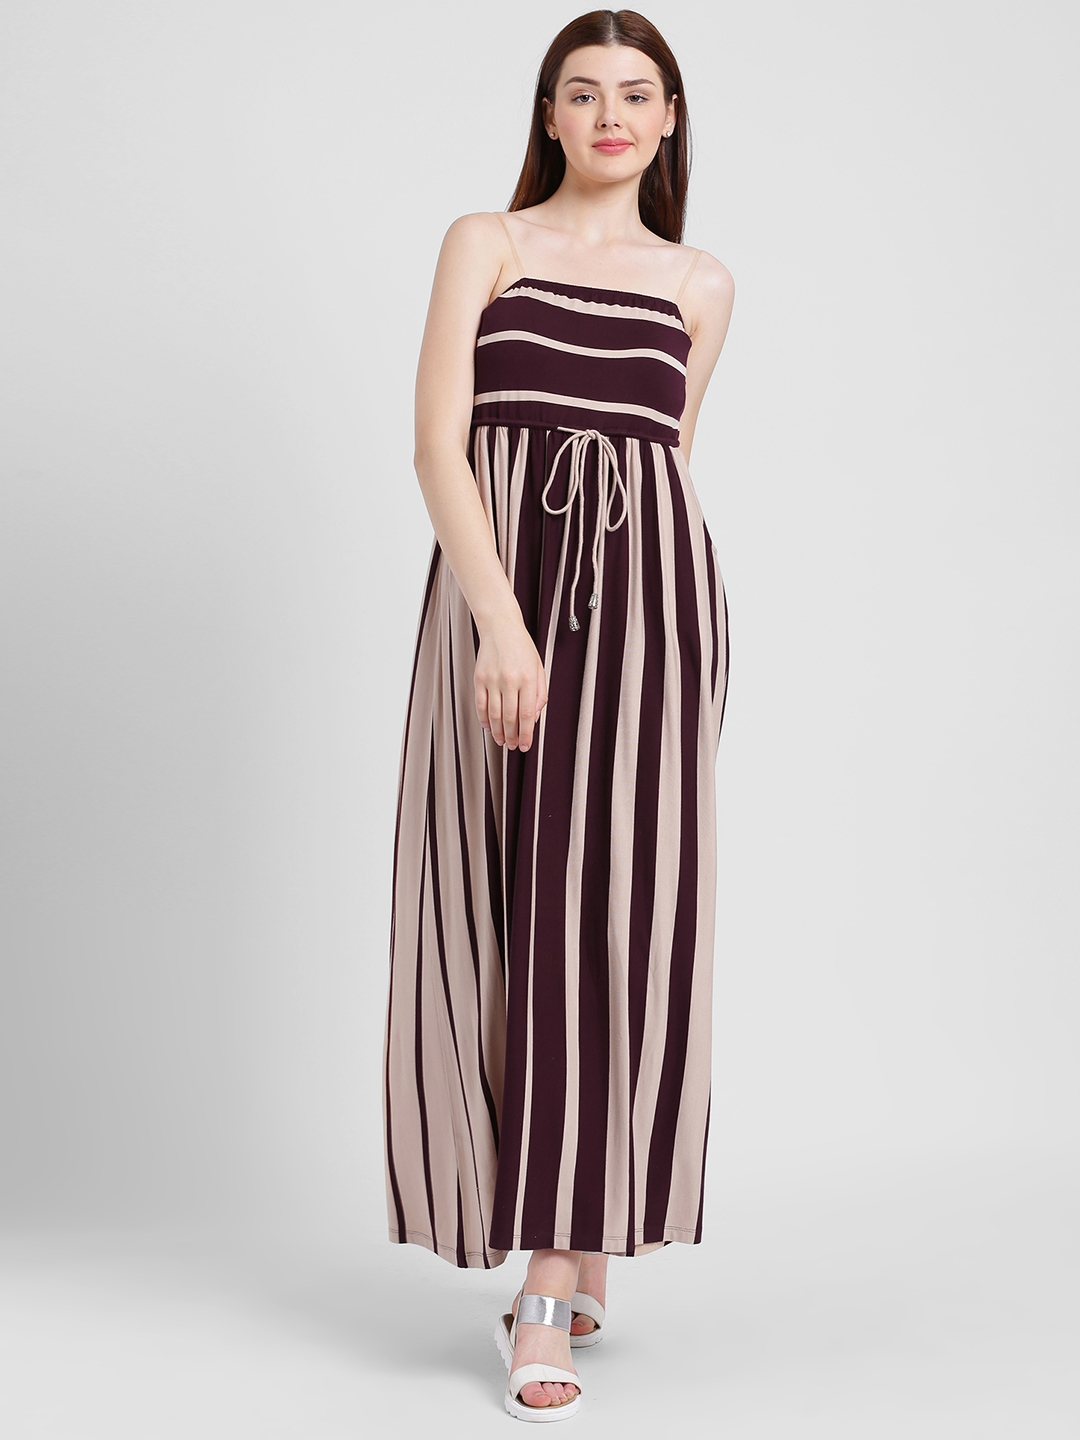 6049afdfec66 Buy Texco Women Purple   Beige Striped Maxi Dress - Dresses for ...